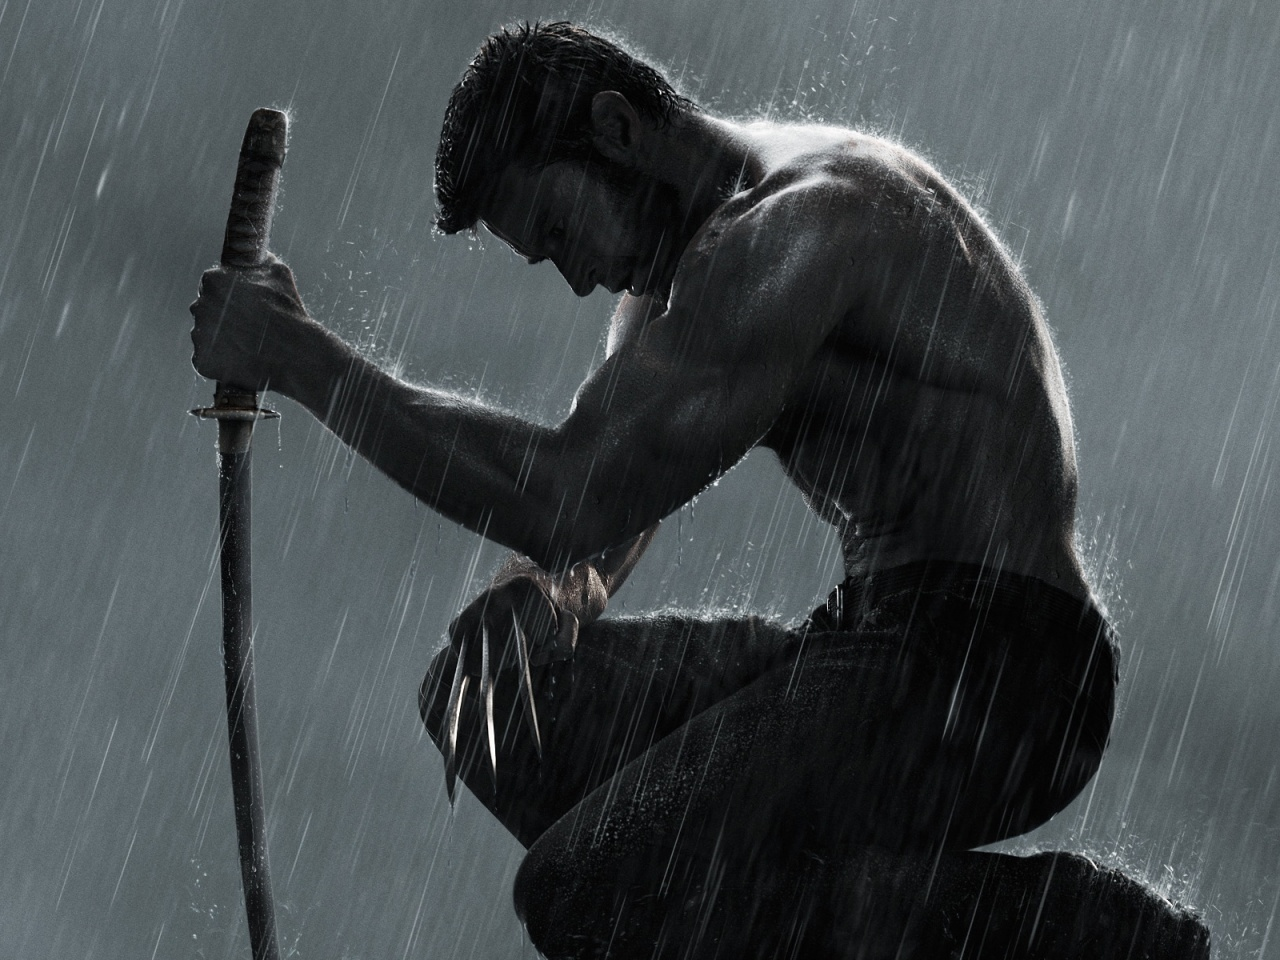 Description: The Wallpaper above is Wolverine sword Wallpaper in Resolution 1280x960. Choose your Resolution and Download Wolverine sword Wallpaper